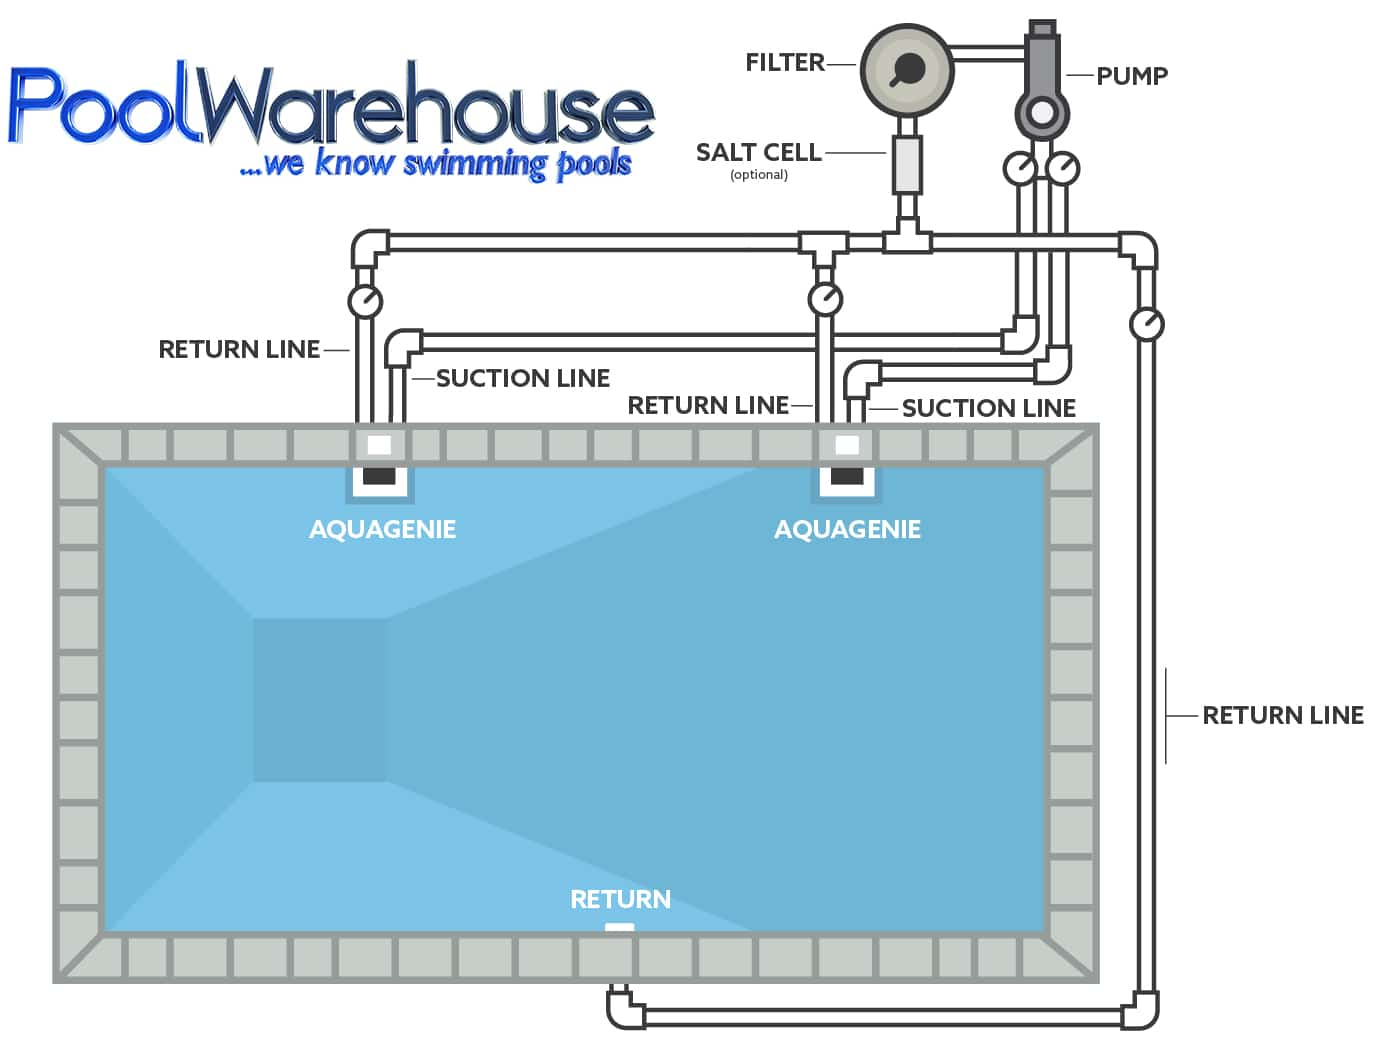 outhouse plumbing diagram with Toilet  Posting System Diagram on Garden Shed Plans additionally Toilet Repairs as well Solar Sanitation Solutions Day 343 moreover Floor Drain For Softener further Toilet  posting System Diagram.